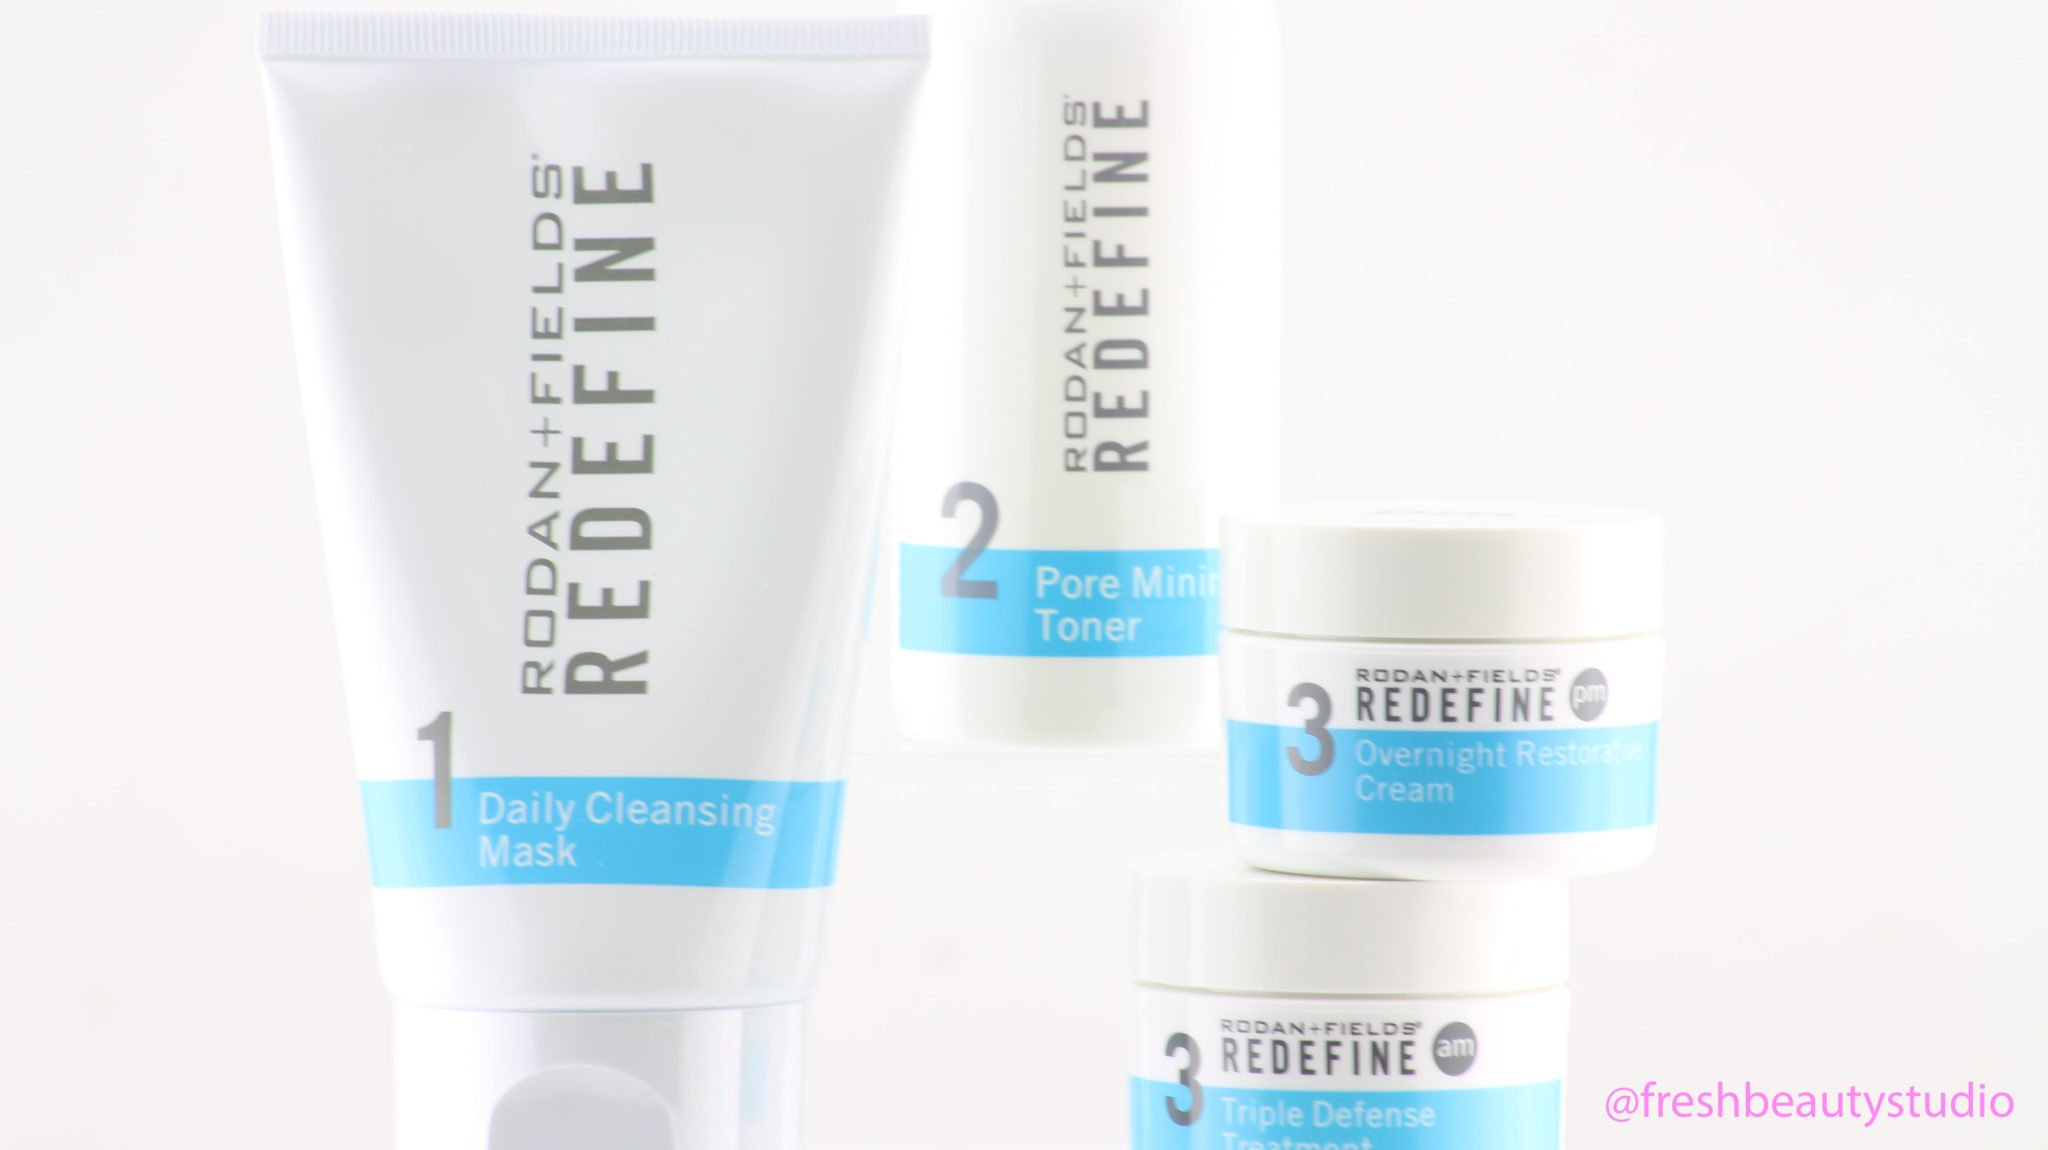 ACUTE CARE + REDEFINE-Rodan + Fields Review